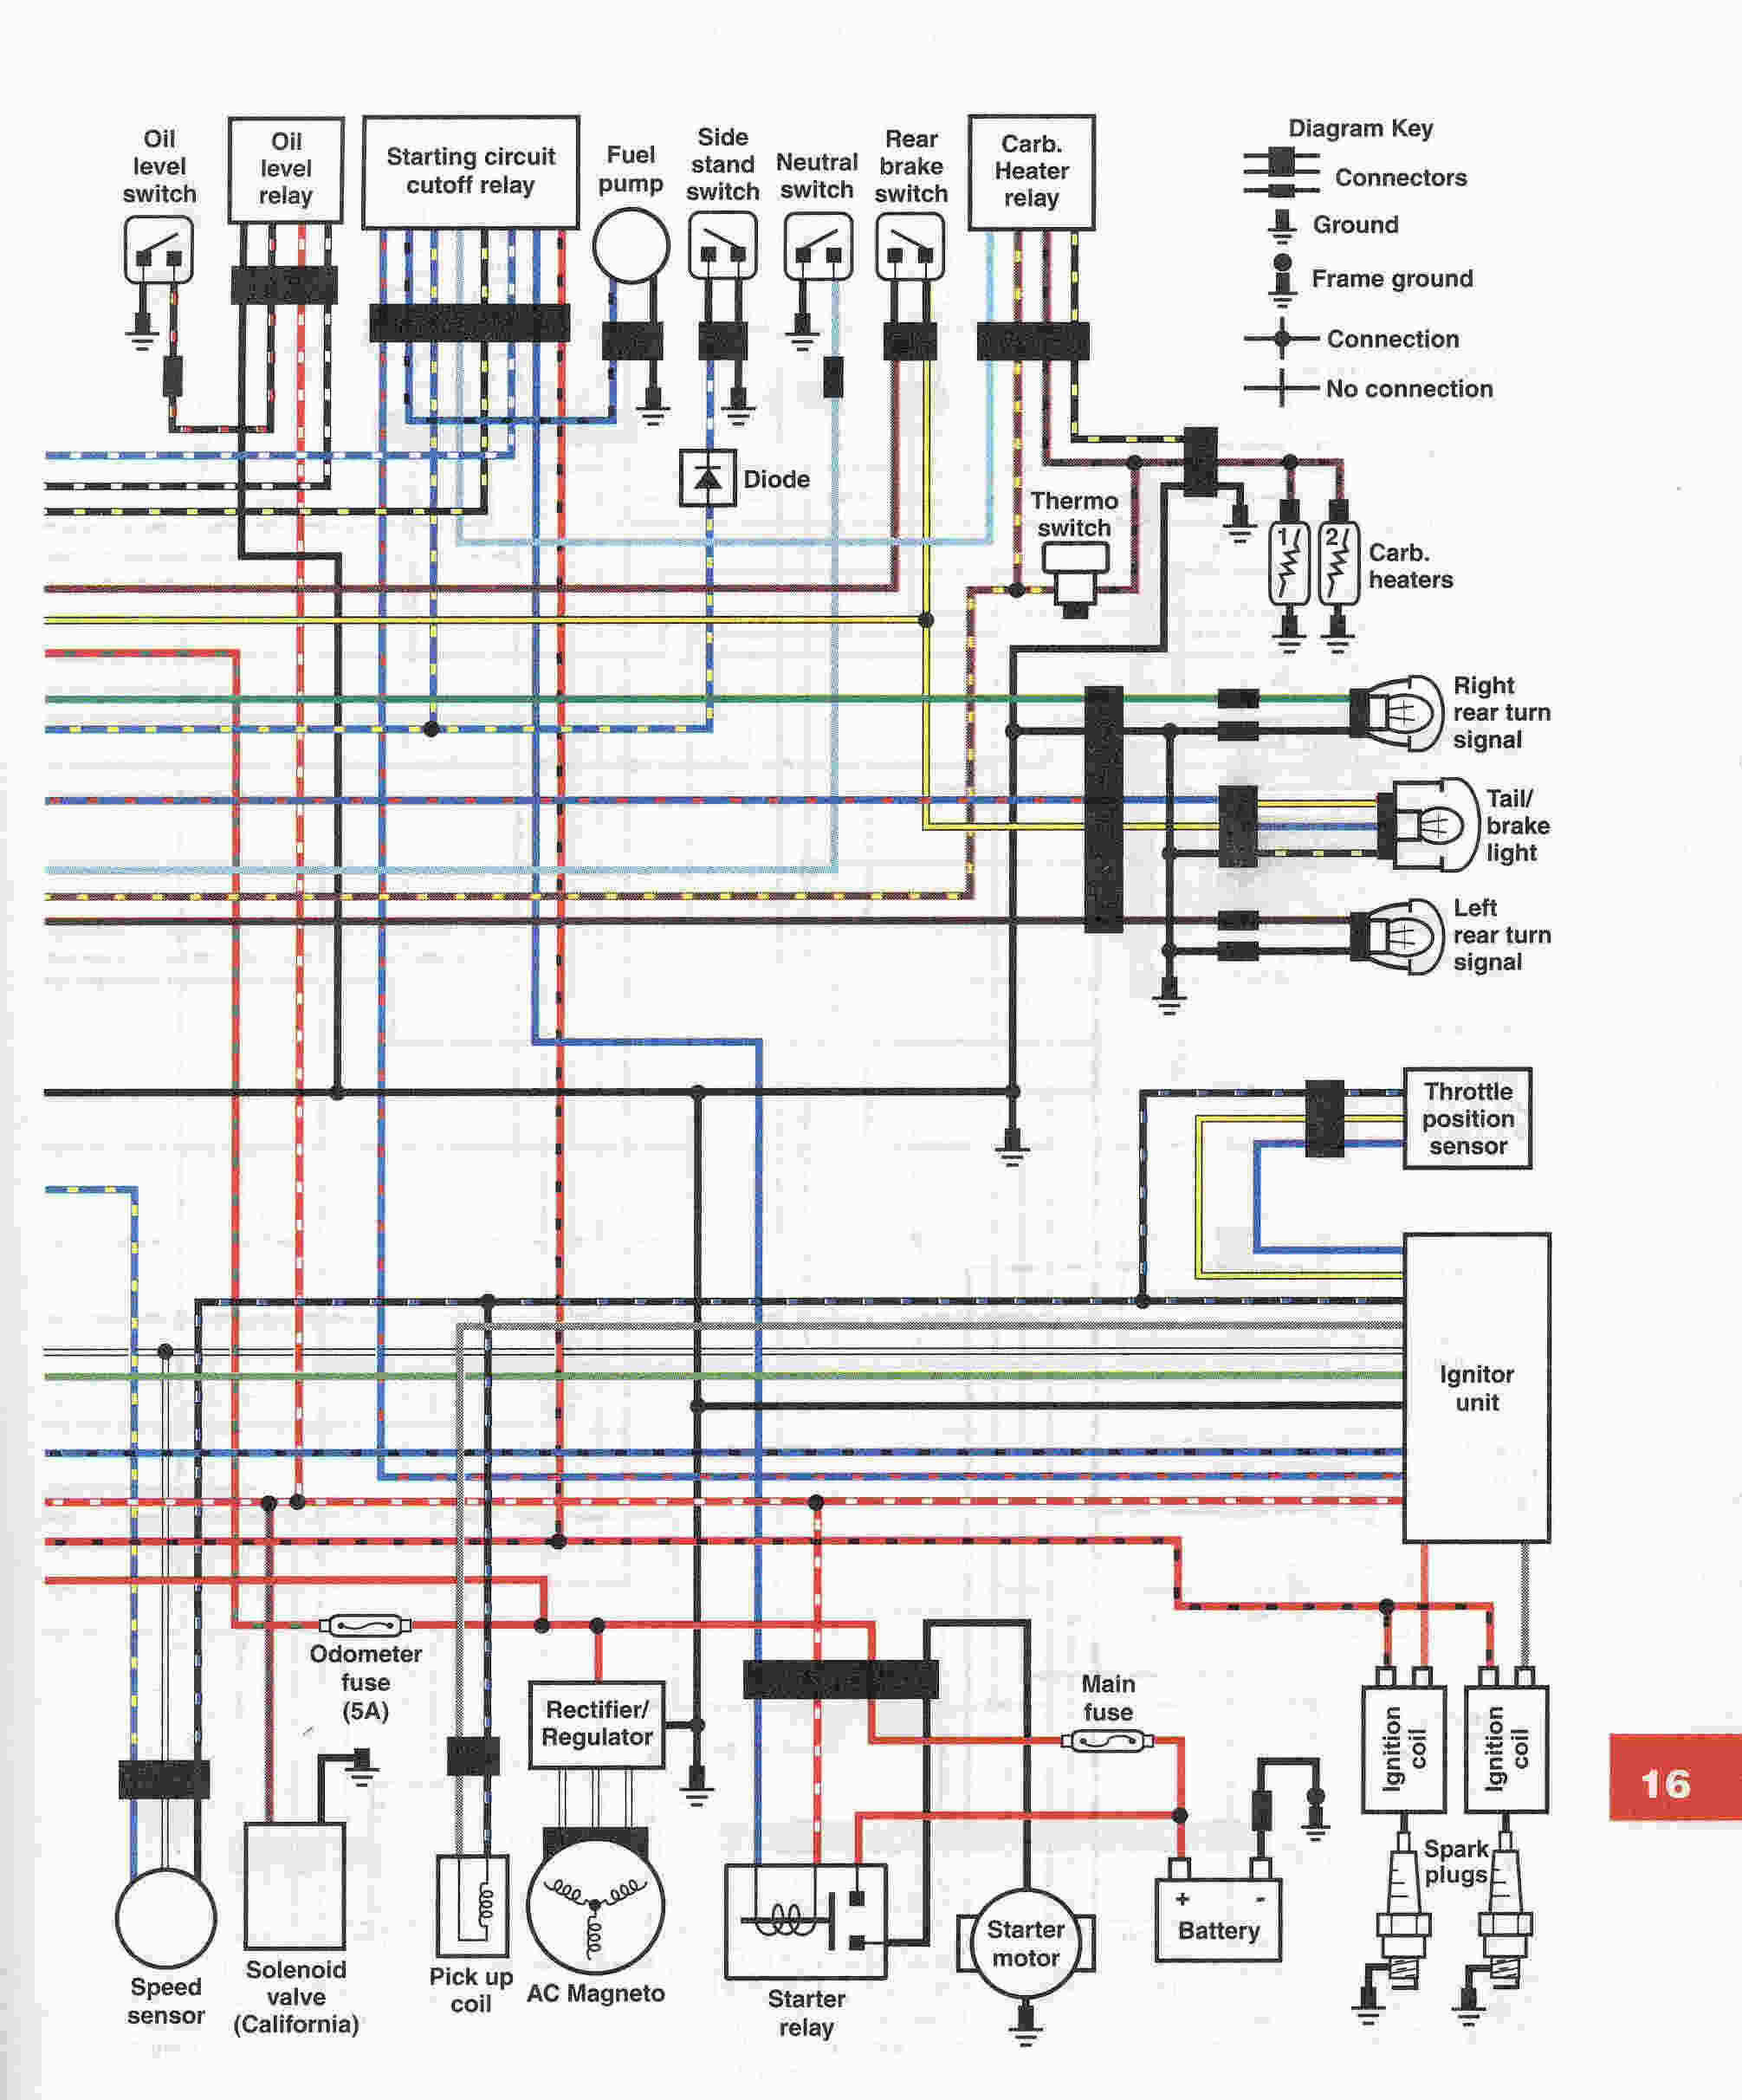 DIAGRAM] Yamaha R6 Key Switch Wiring Diagram FULL Version HD Quality Wiring  Diagram - AMF-AUTOCARS.AUTOFOLLOW.FR